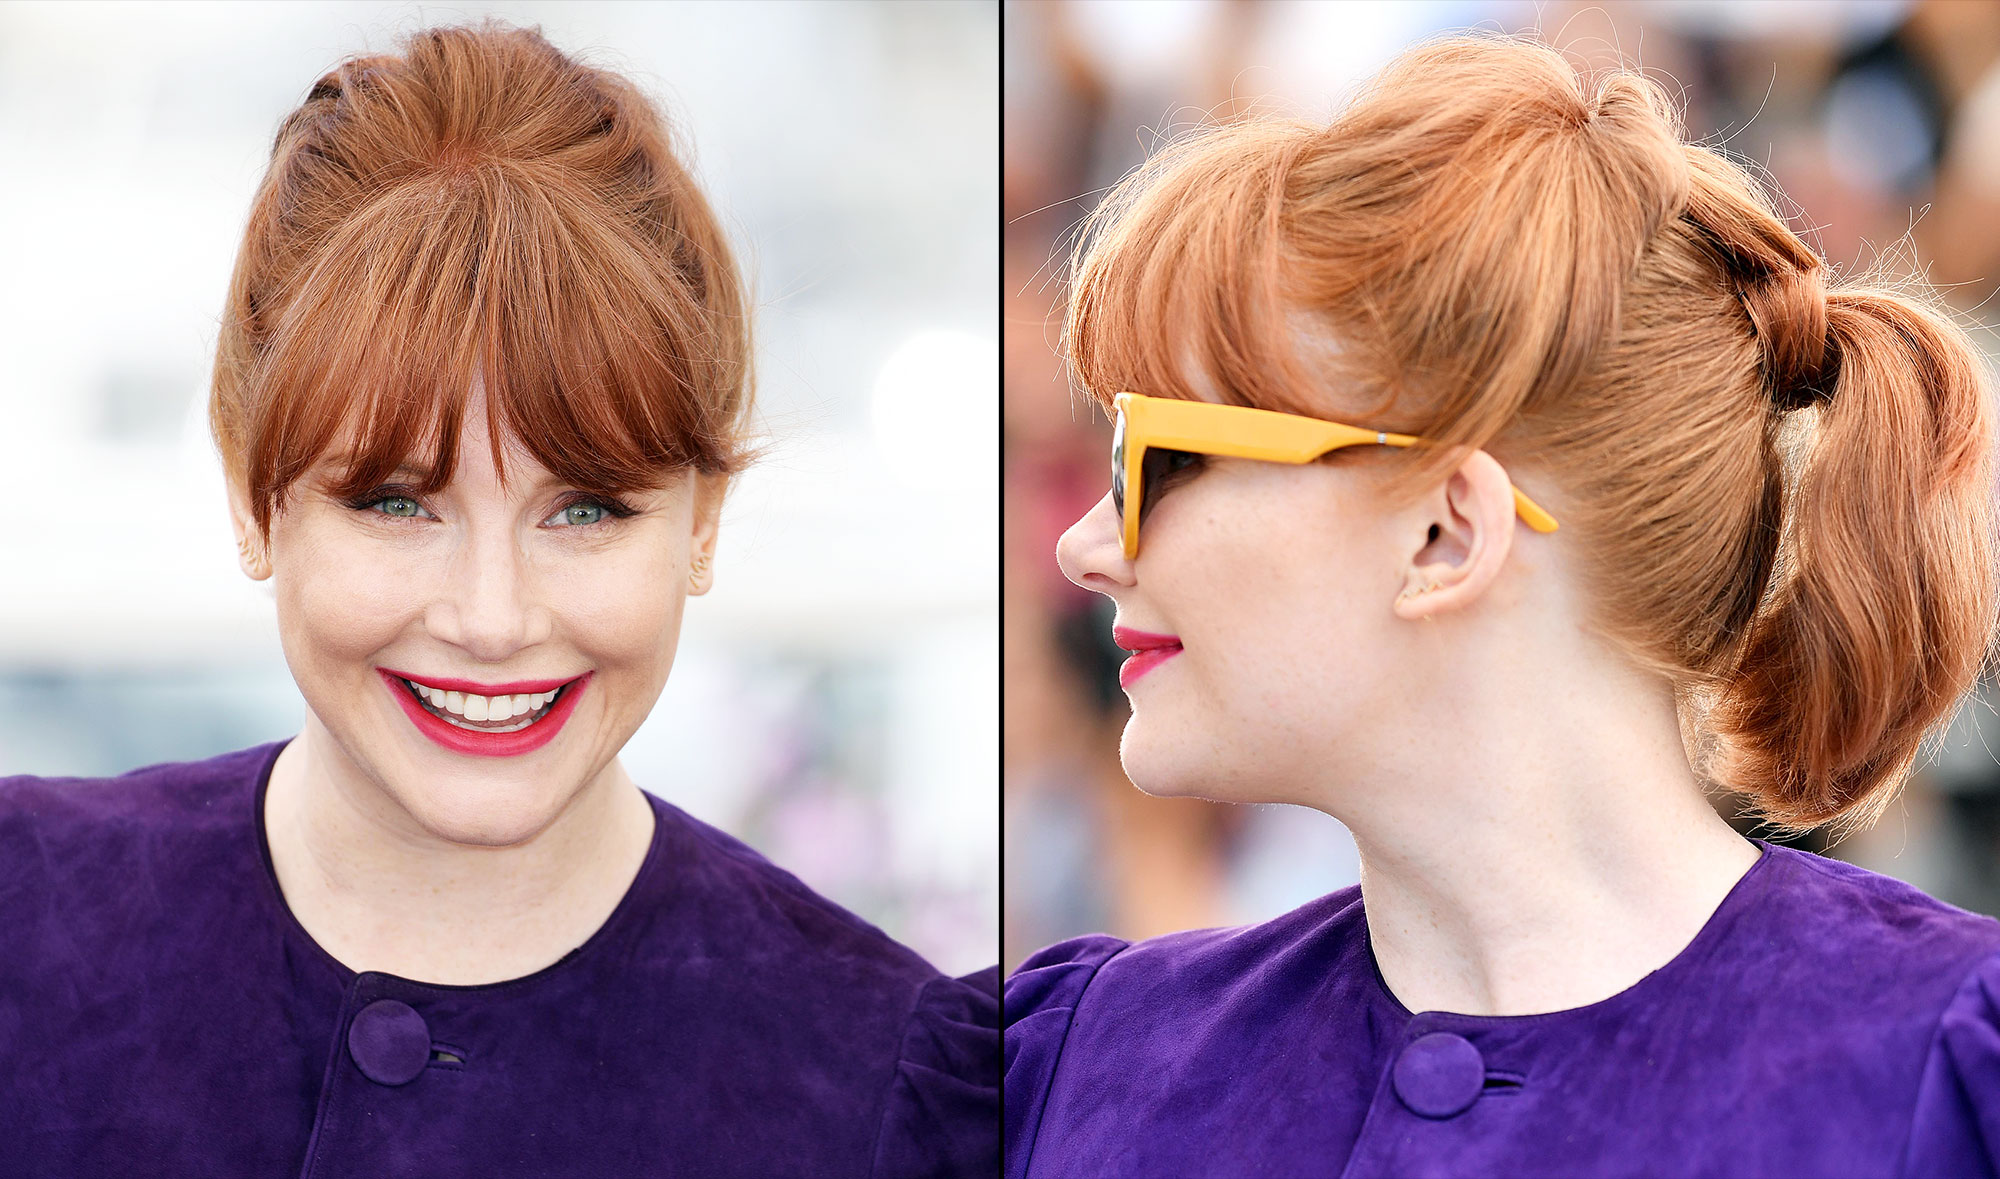 Bryce Dallas Howard Cannes Film Festival Real Real Consignment Purple Dress - Celeb makeup artist Kara Yoshimoto Bua and hairstylist Jenny Cho are the actress' glam squad for the festival. To complement that striking red lip and flirty retro vibe of the frock, Cho created an intricate layered ponytail.